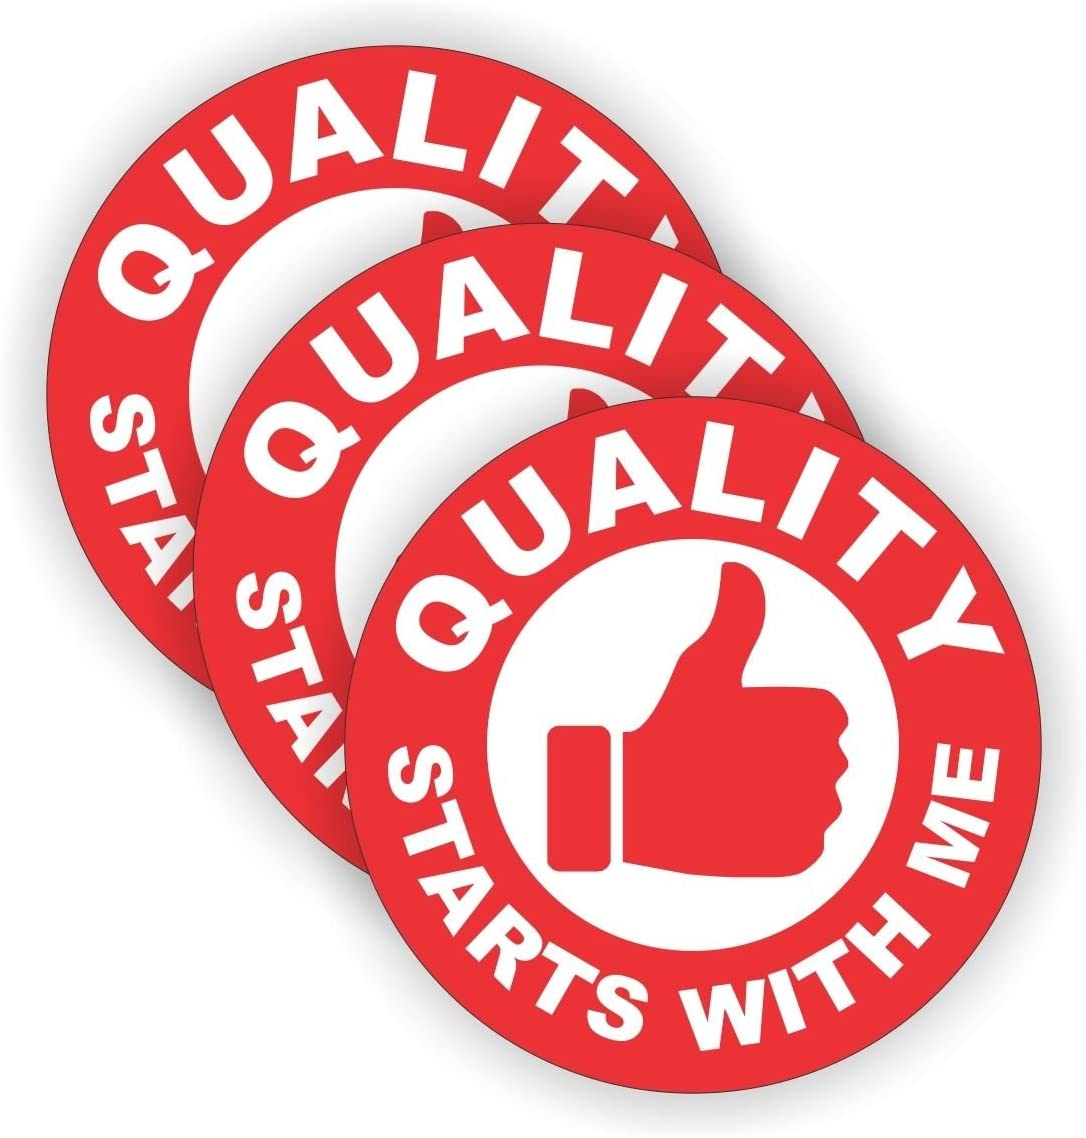 """(3 PACK) Quality Starts With Me circle vinyl Hard Hat Helmet Decal by StickerDad - size: 2"""" ROUND color: RED/WHITE - Hard Hat, Helmet, Windows, Walls, Bumpers, Laptop, Lockers, etc."""